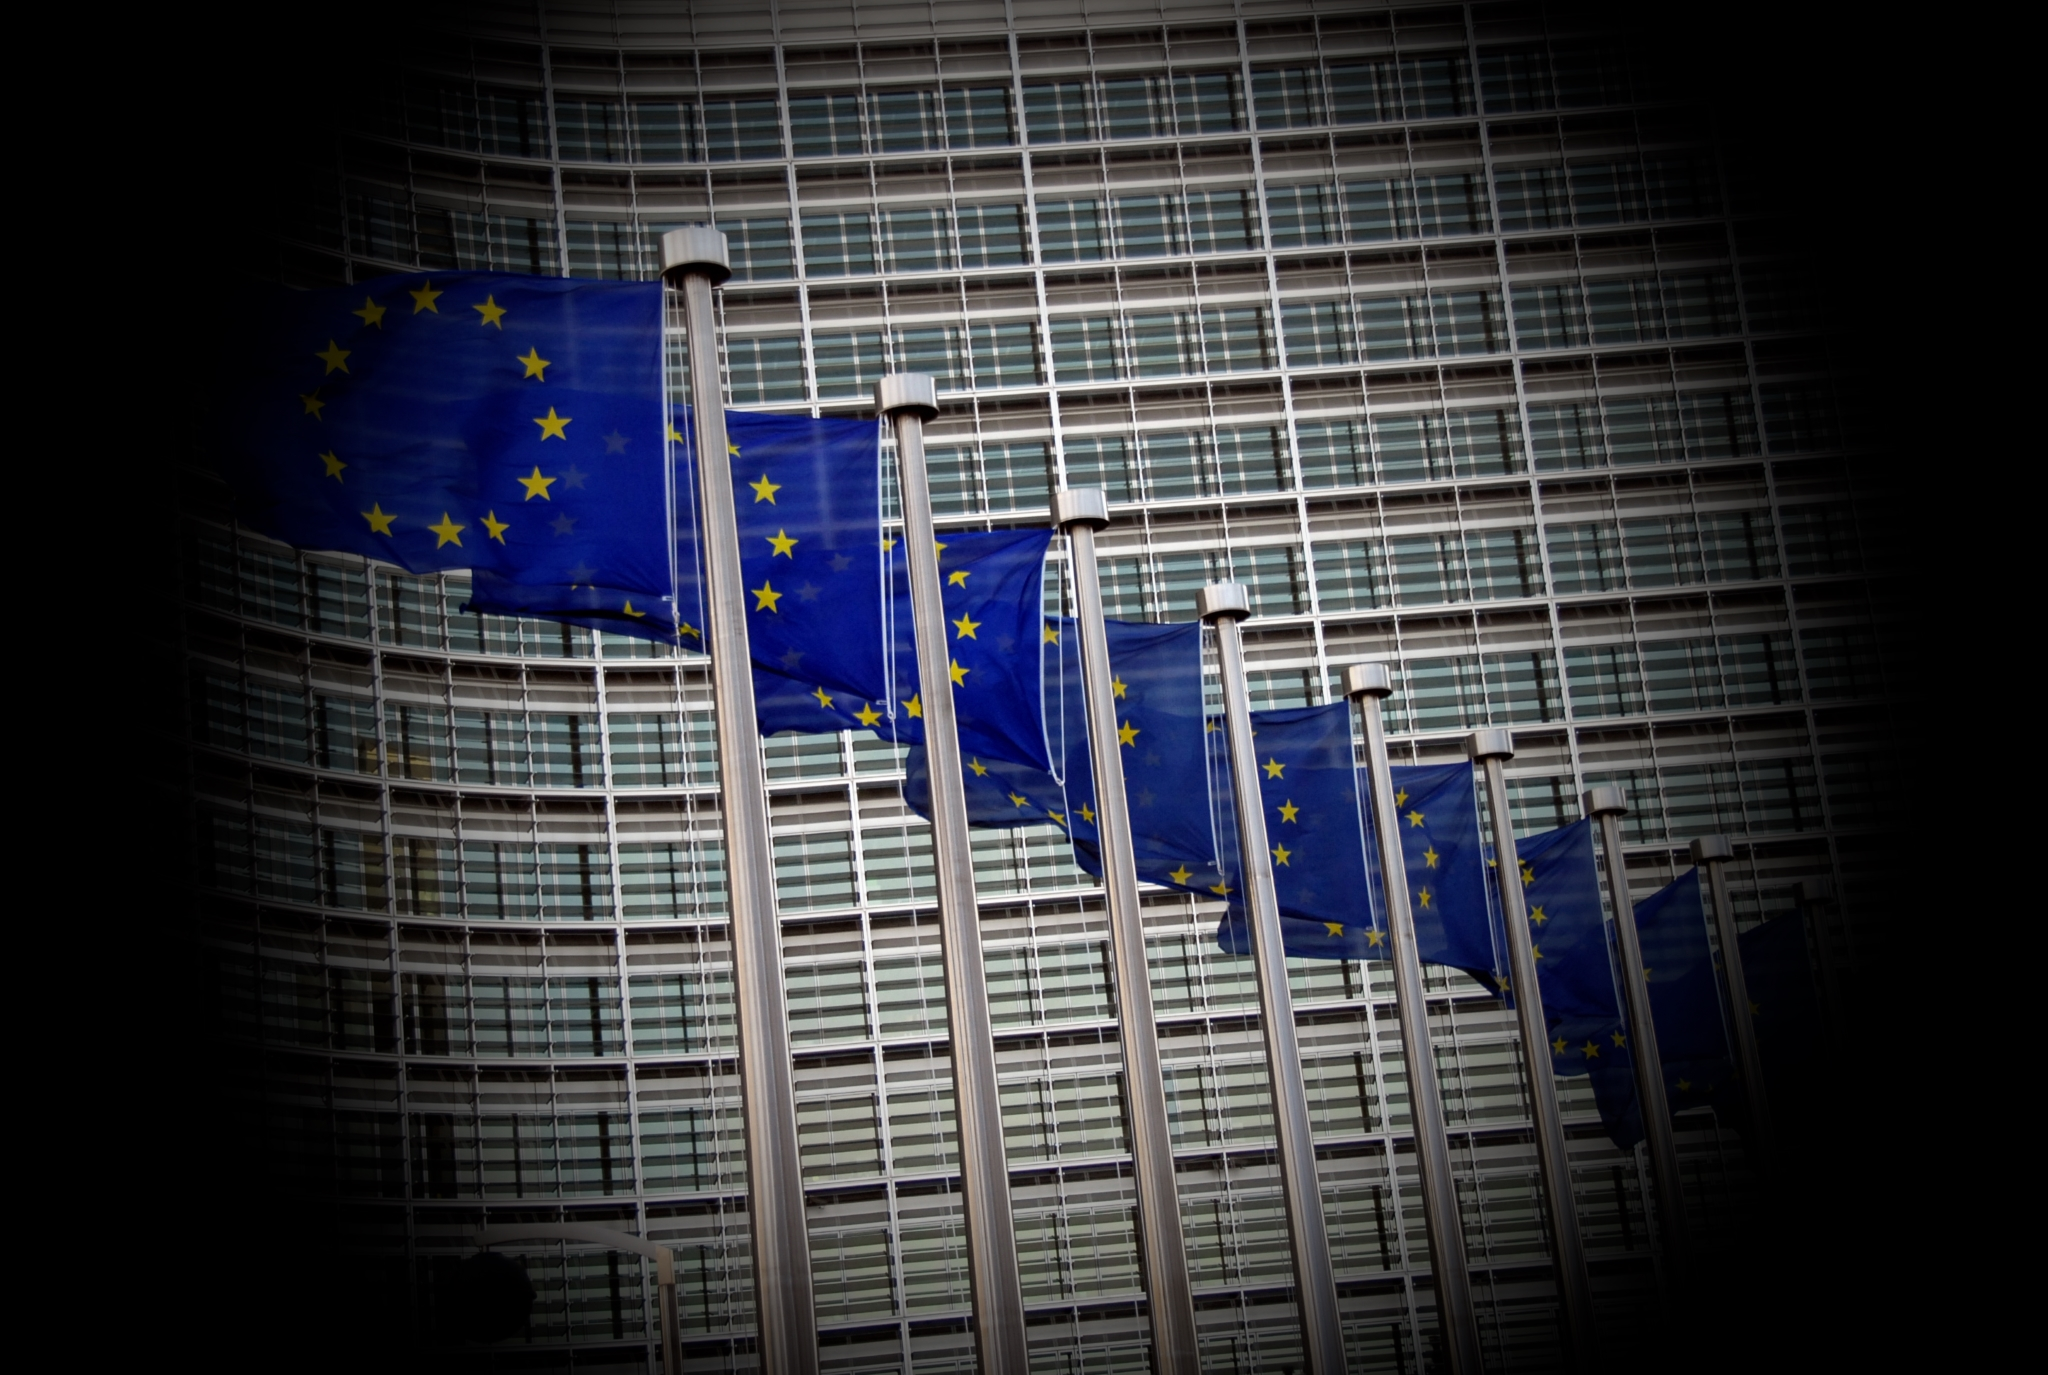 EU flags in front of the European Commission building, with black borders